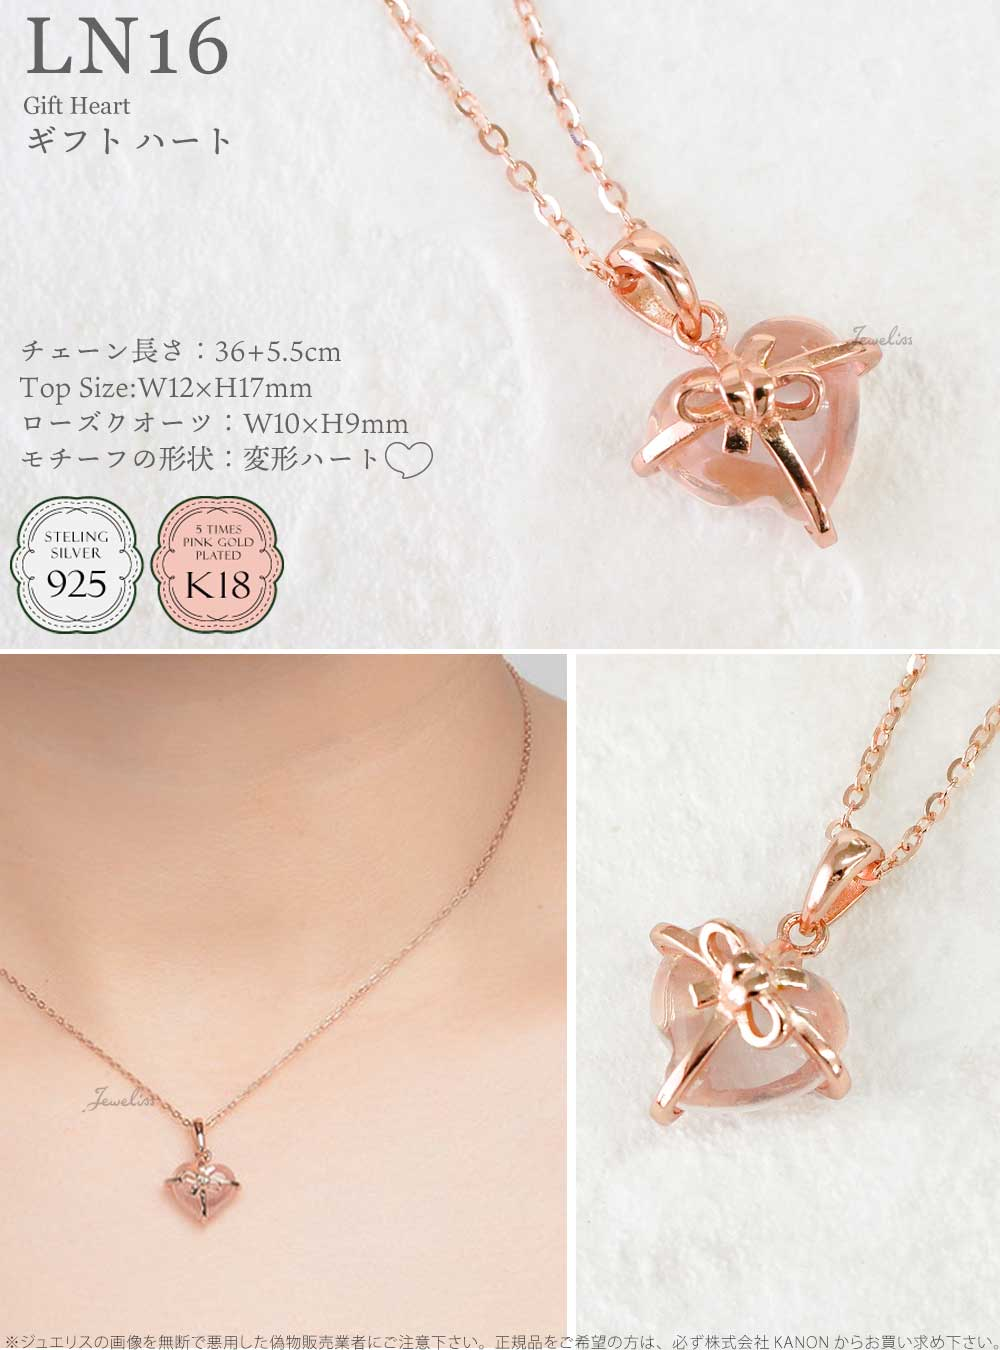 Jeweliss ジュエリス ギフト ハート ローズクオーツ 10月 誕生石 ネックレス 着用